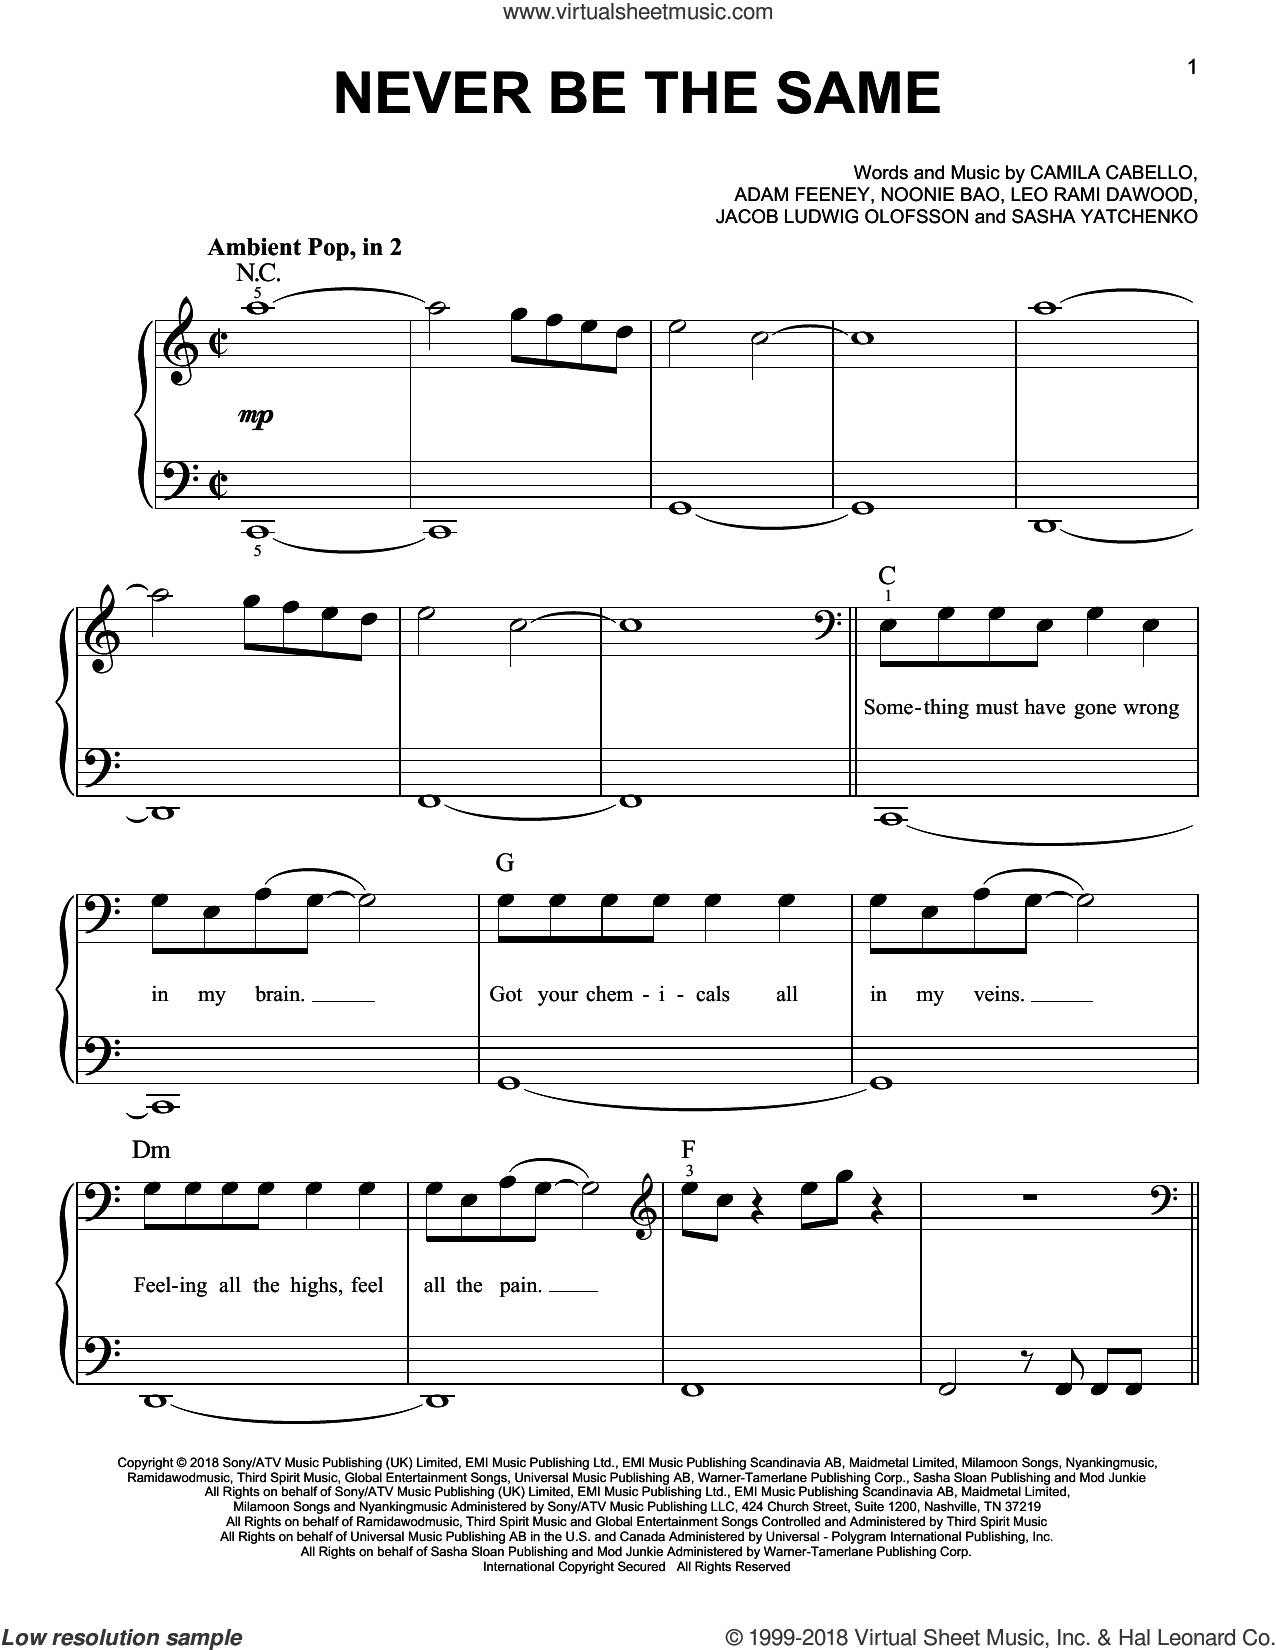 Never Be The Same sheet music for piano solo by Camila Cabello, Adam Feeney, Jacob Ludwig Olofsson, Leo Rami Dawood and Noonie Bao, easy skill level